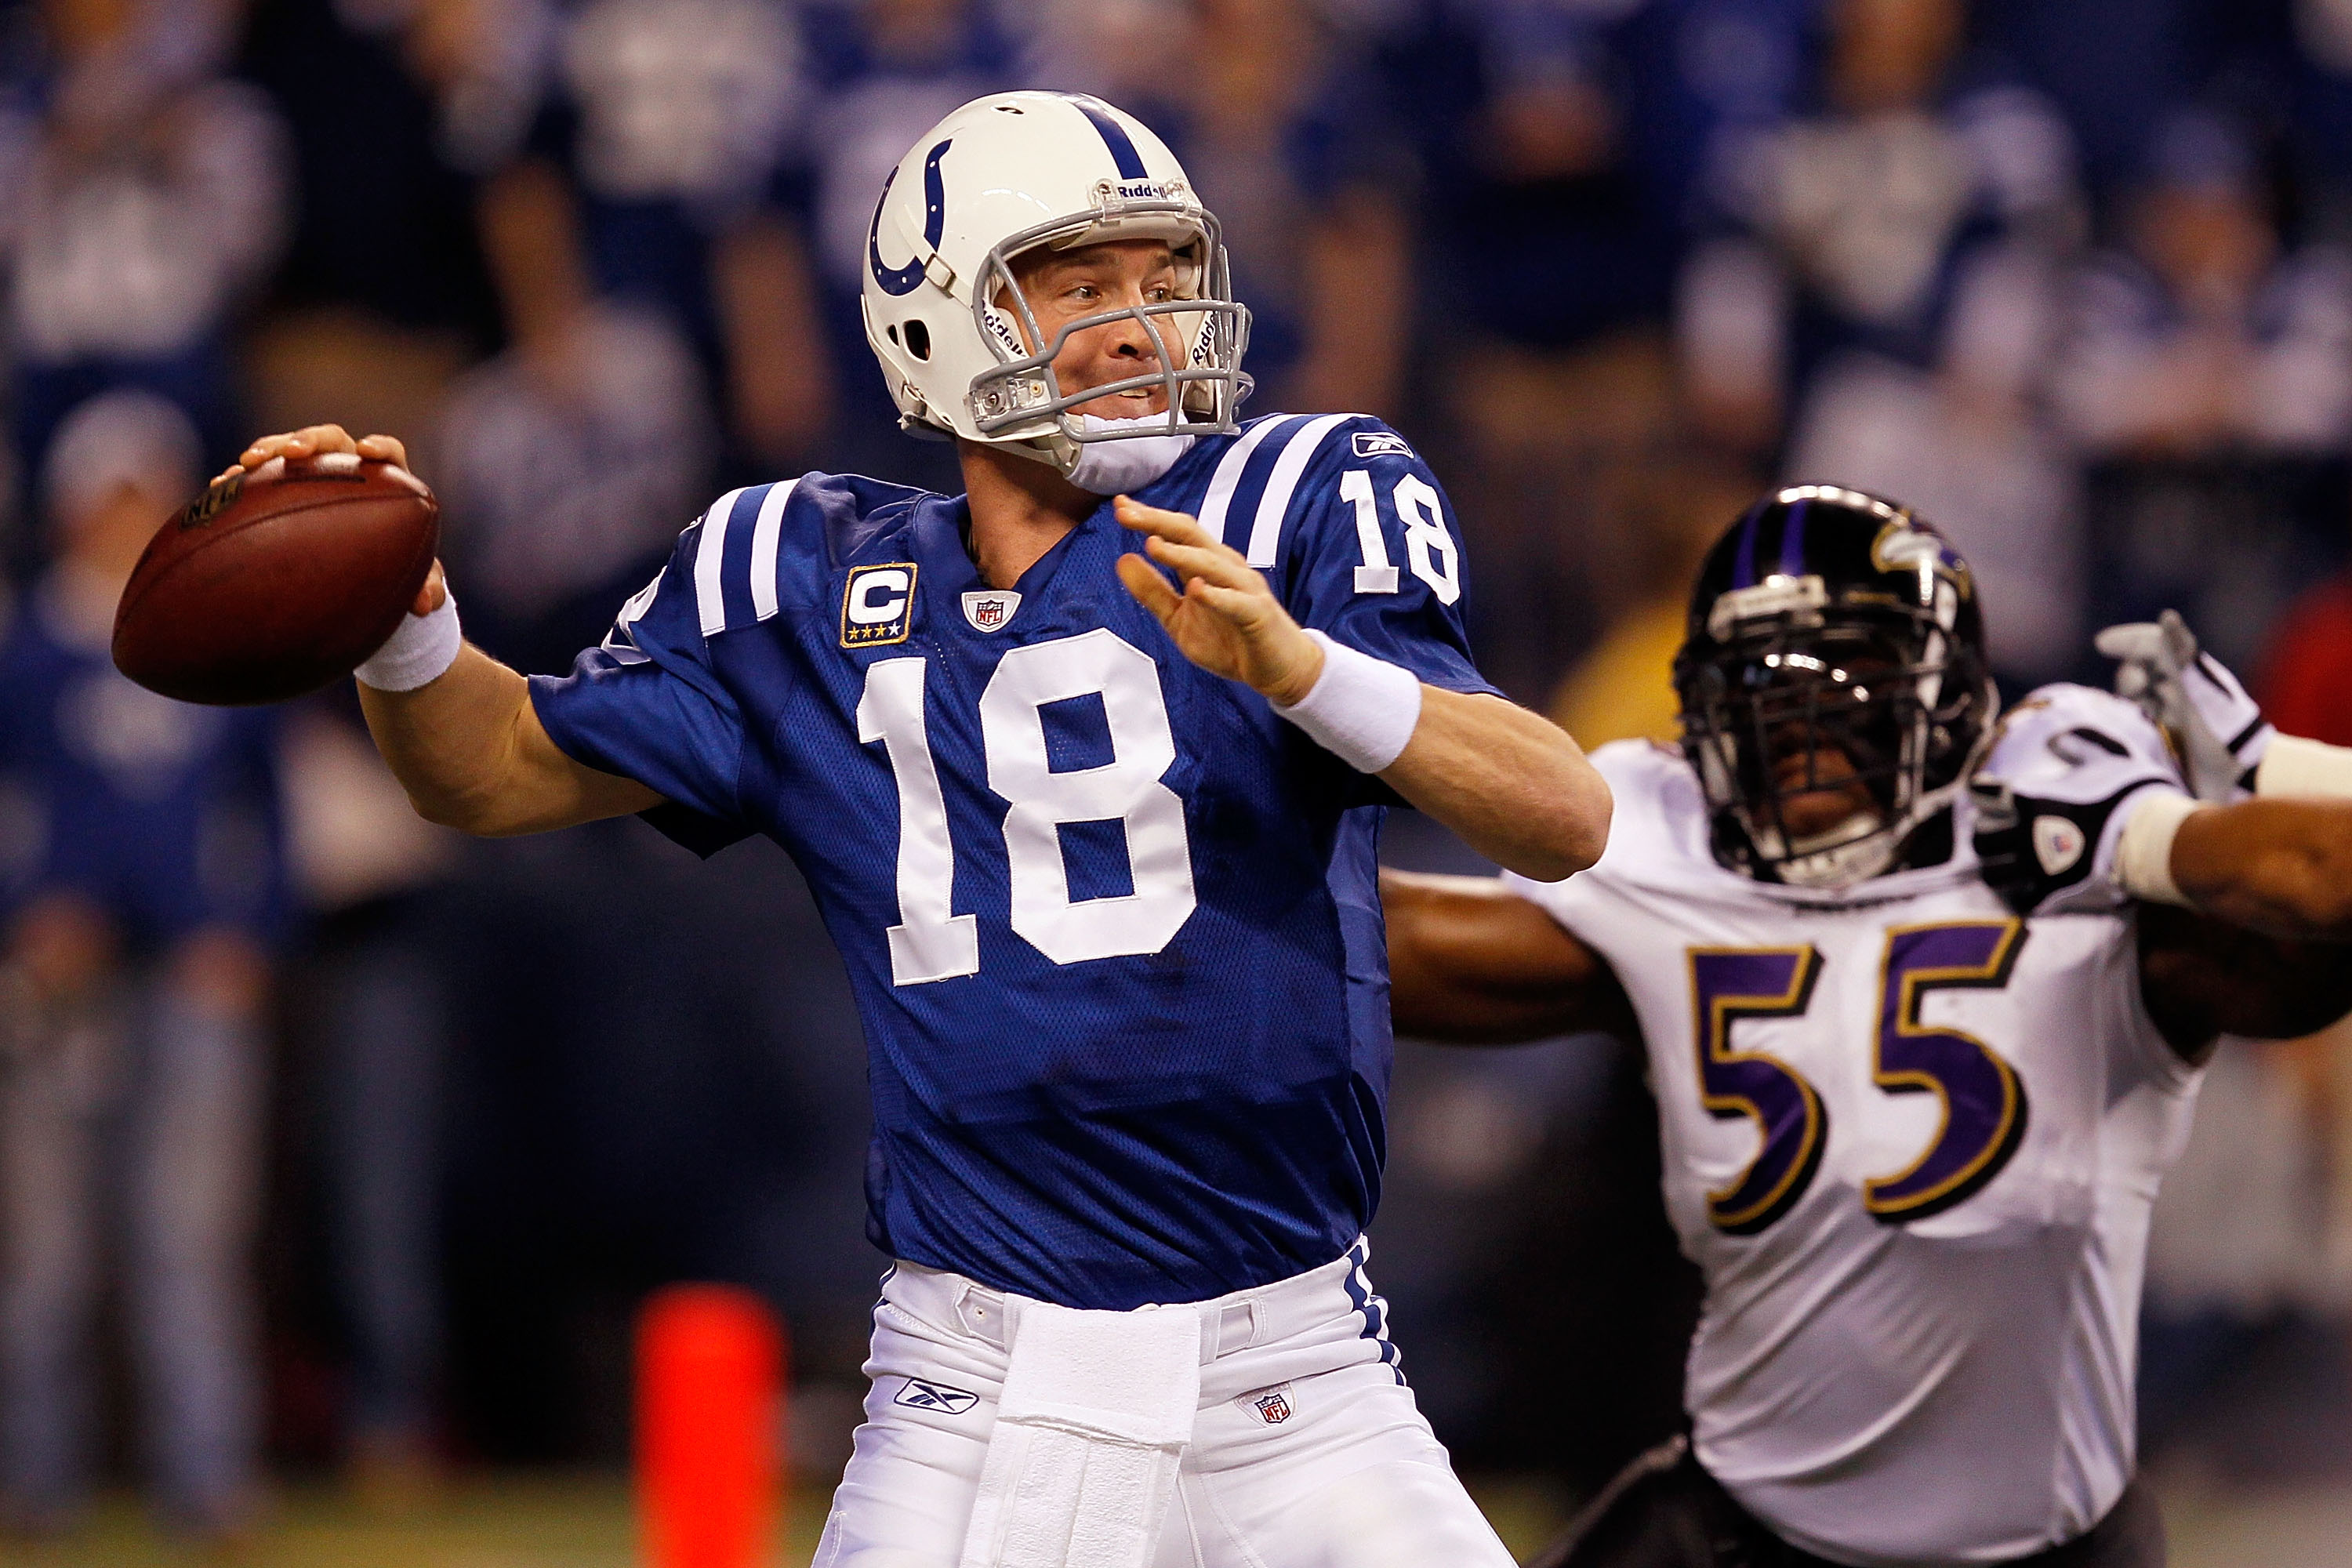 INDIANAPOLIS - JANUARY 16:  Quarterback Peyton Manning #18 of the Indianapolis Colts throws the ball as Terrell Suggs #55 of the Baltimore Ravens rushes in during the AFC Divisional Playoff Game at Lucas Oli Stadium on January 16, 2010 in Indianapolis, In